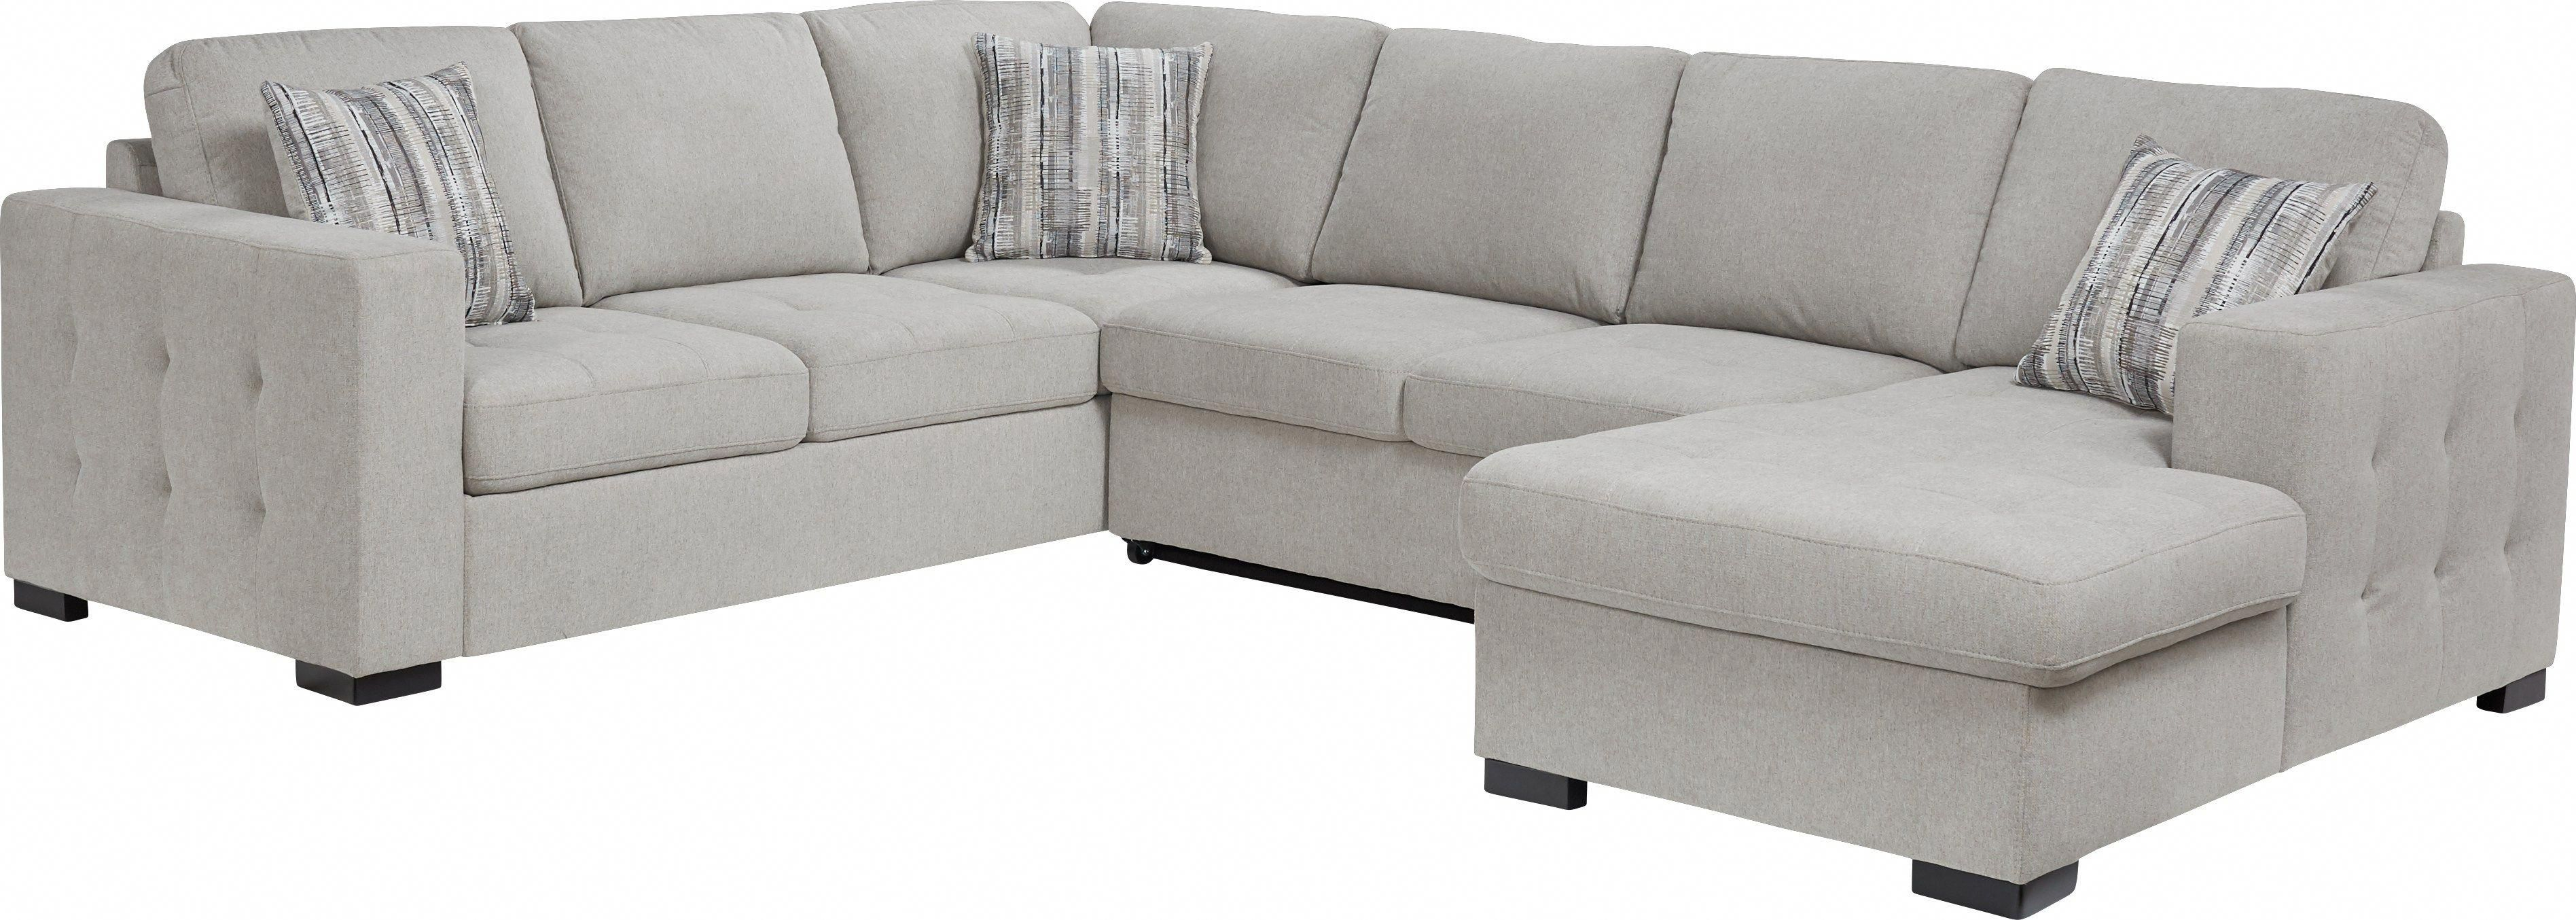 8 Sofas 8 Styles Sleeper Sectional Sectional Grey Sectional